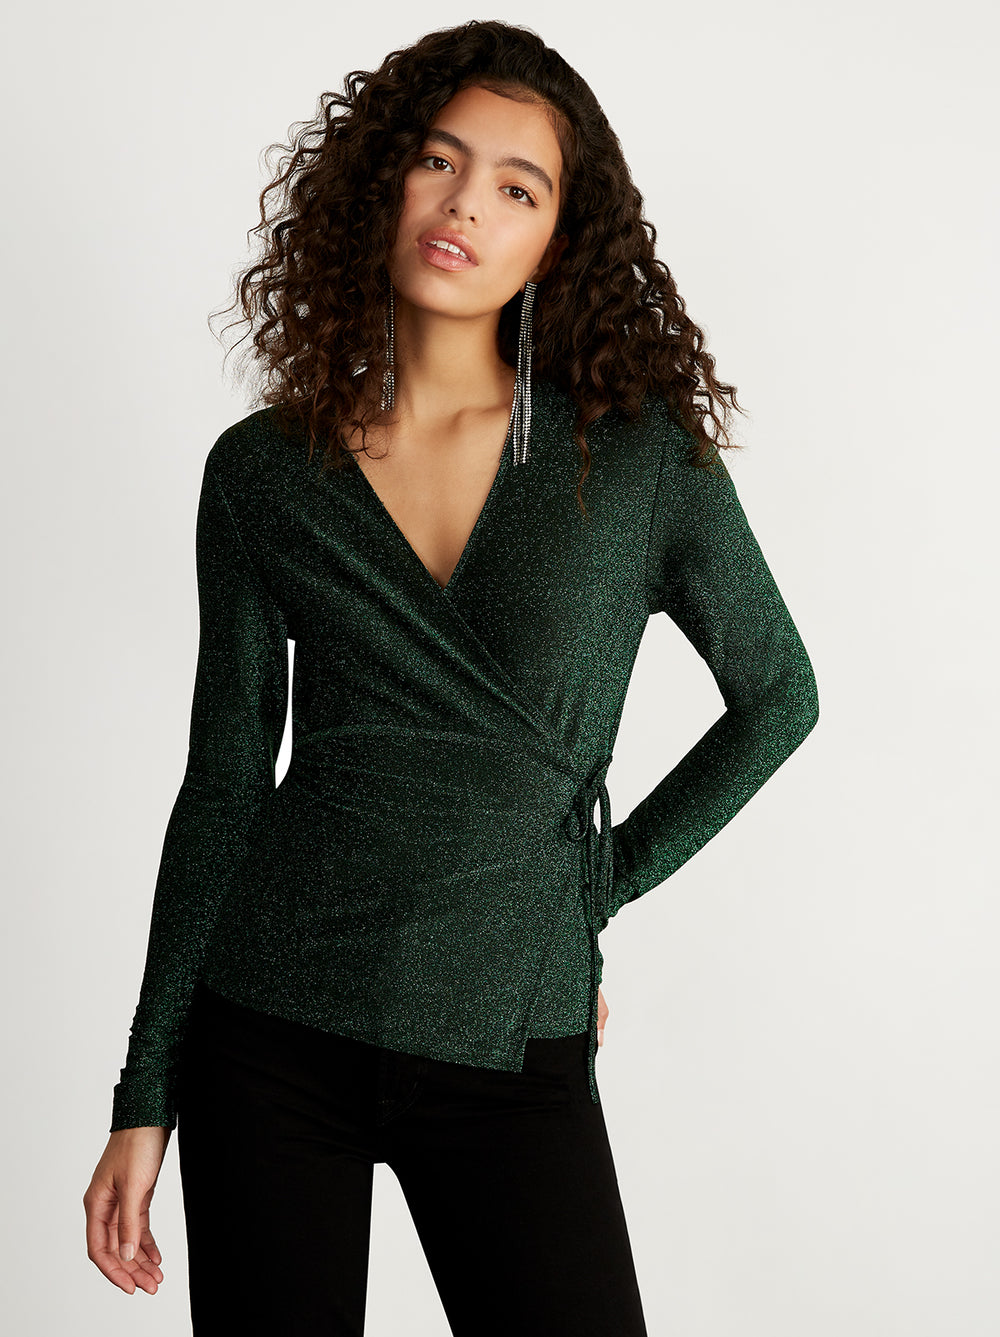 Bernice Green Metallic Wrap Top